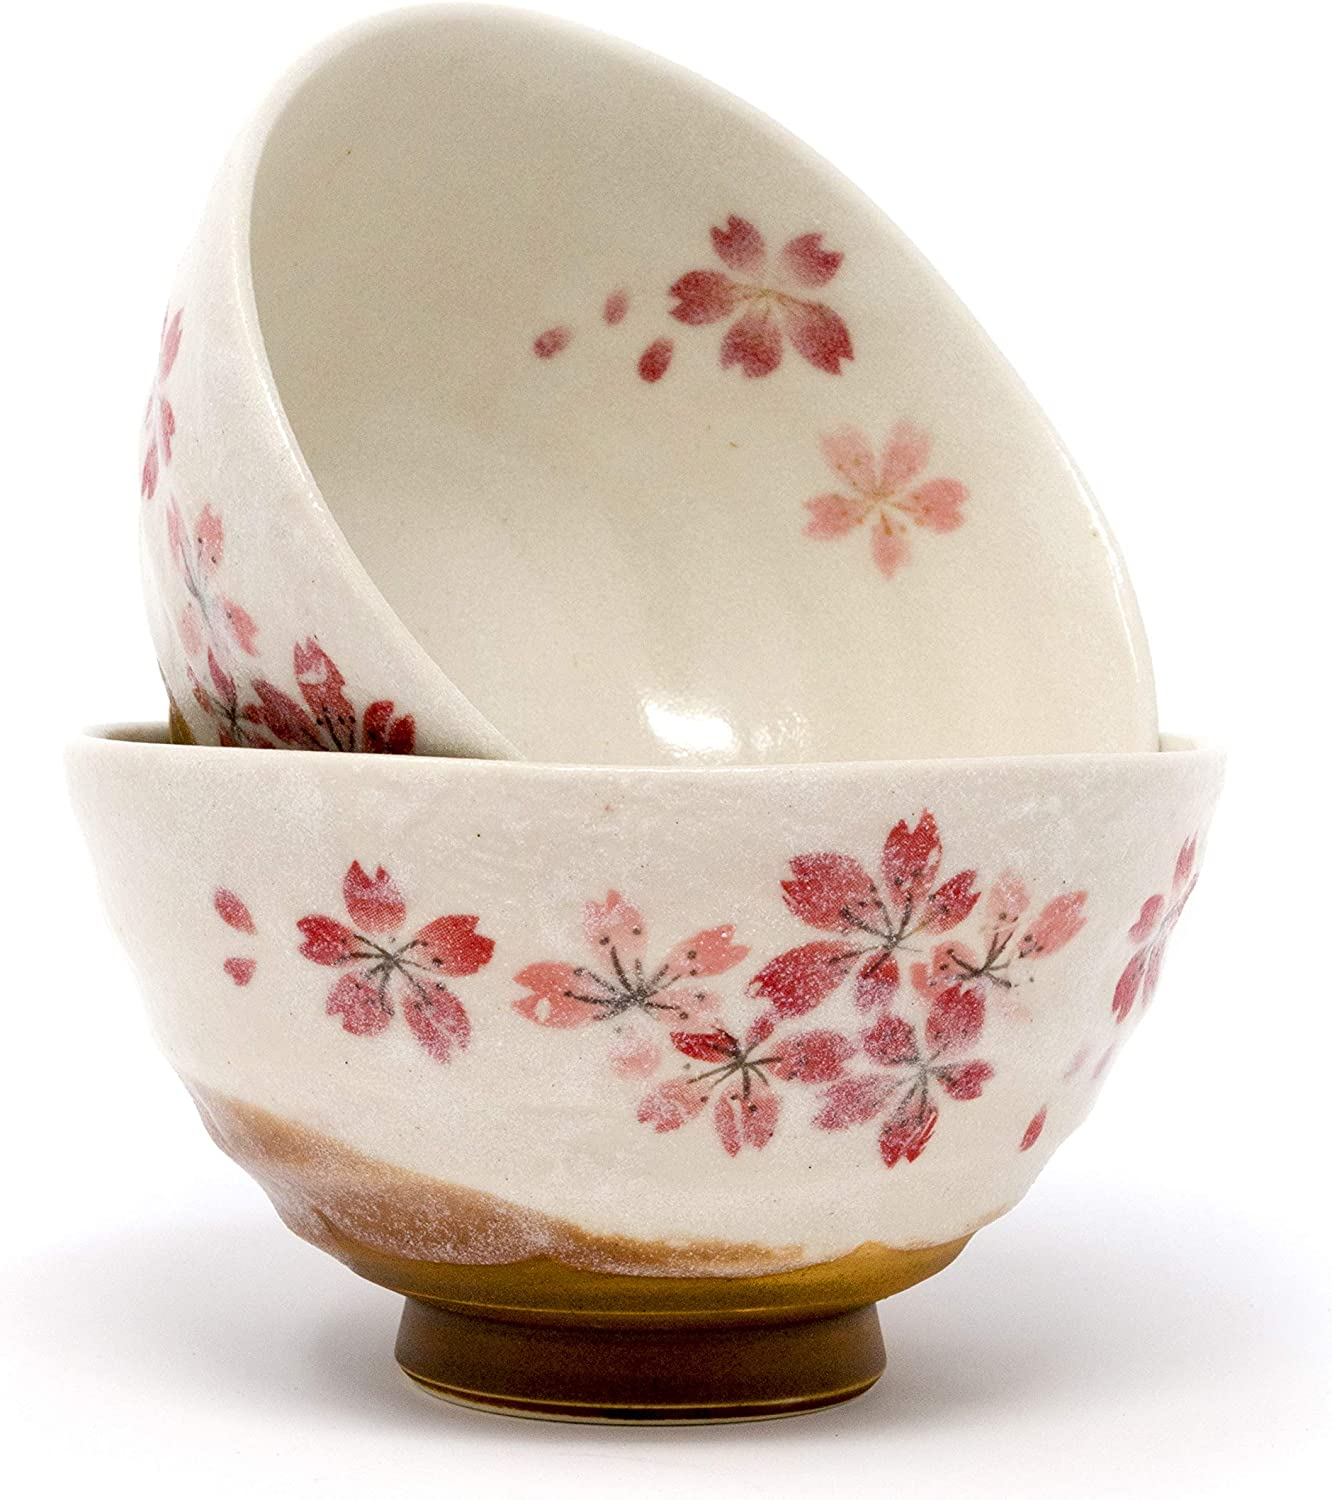 Regular Max 69% OFF store Traditional Japanese Handmade Porcelain Bowls - Made in 1 Japan